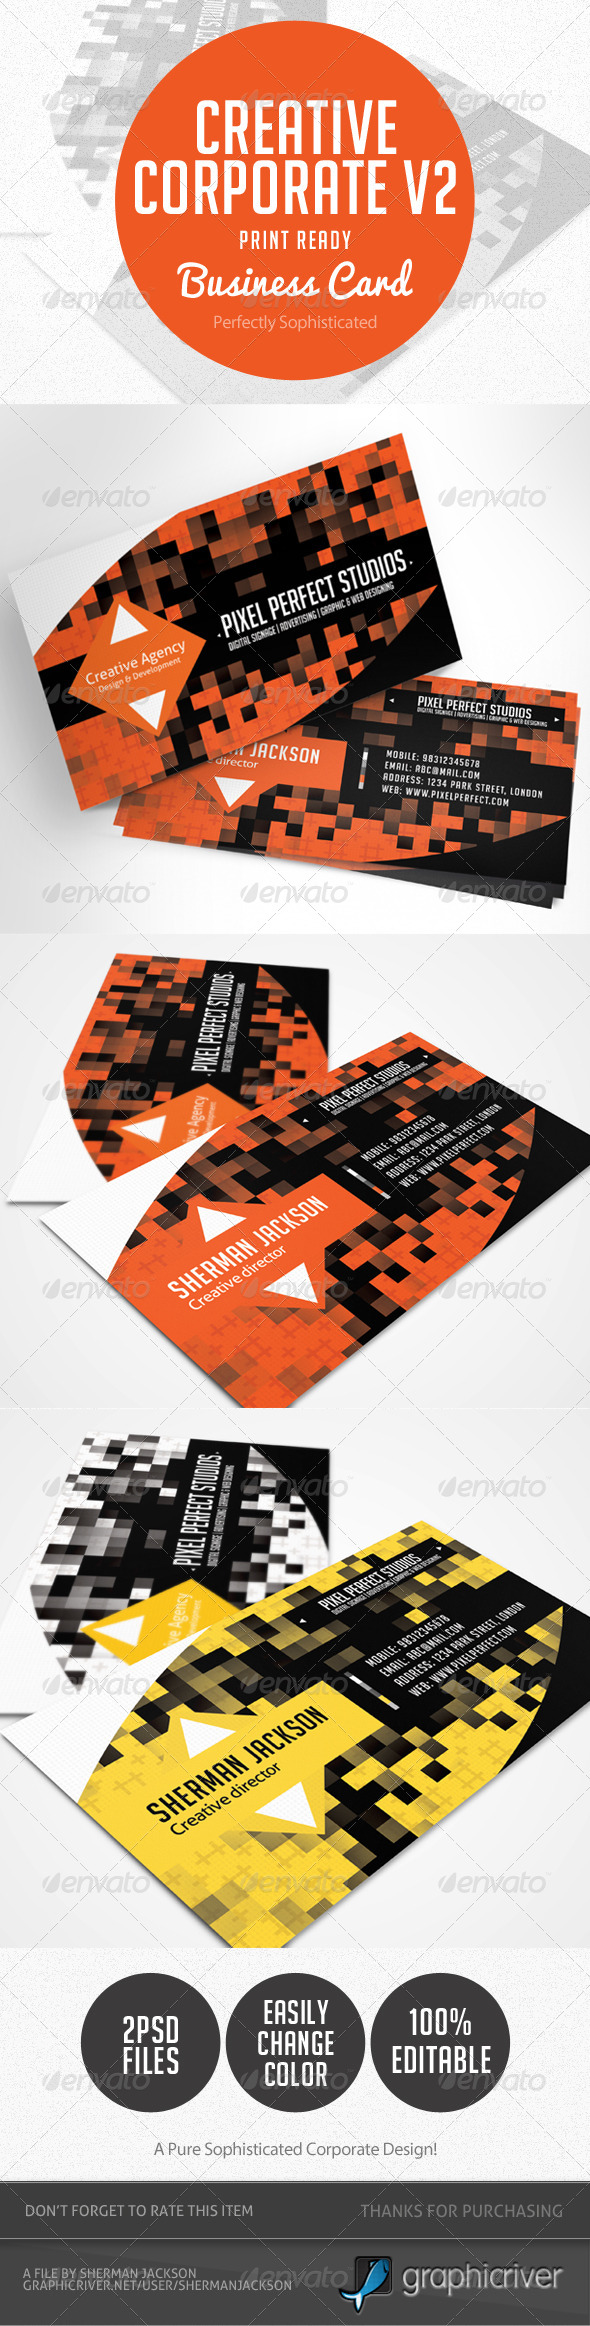 Creative Corporate Business Card V.2 - Corporate Business Cards